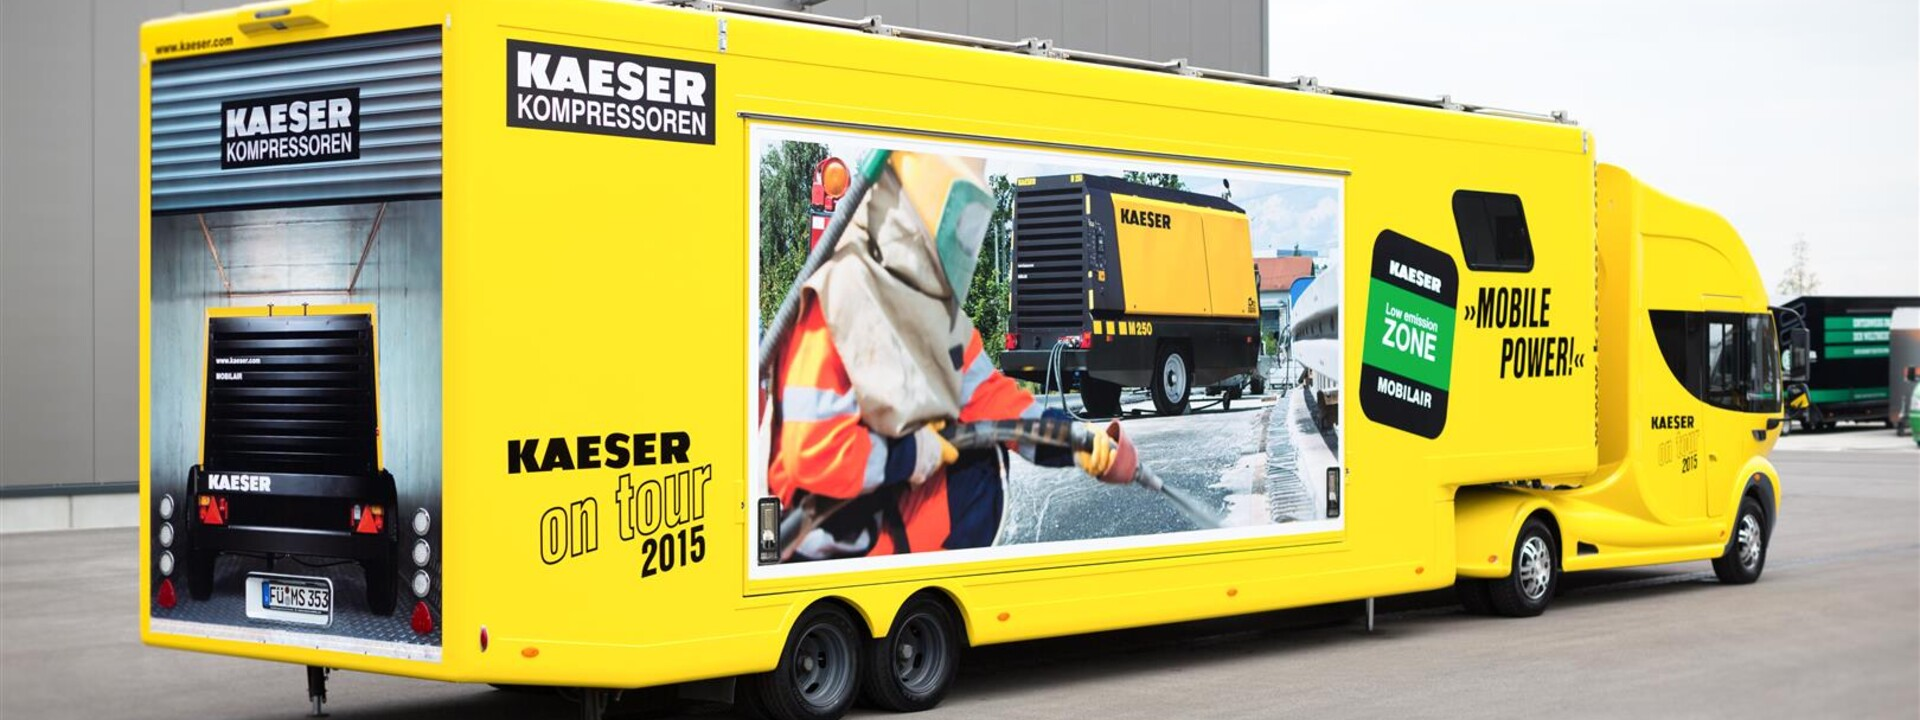 Kaeser-Showtruck-Futuria-2-backside-s.jpg